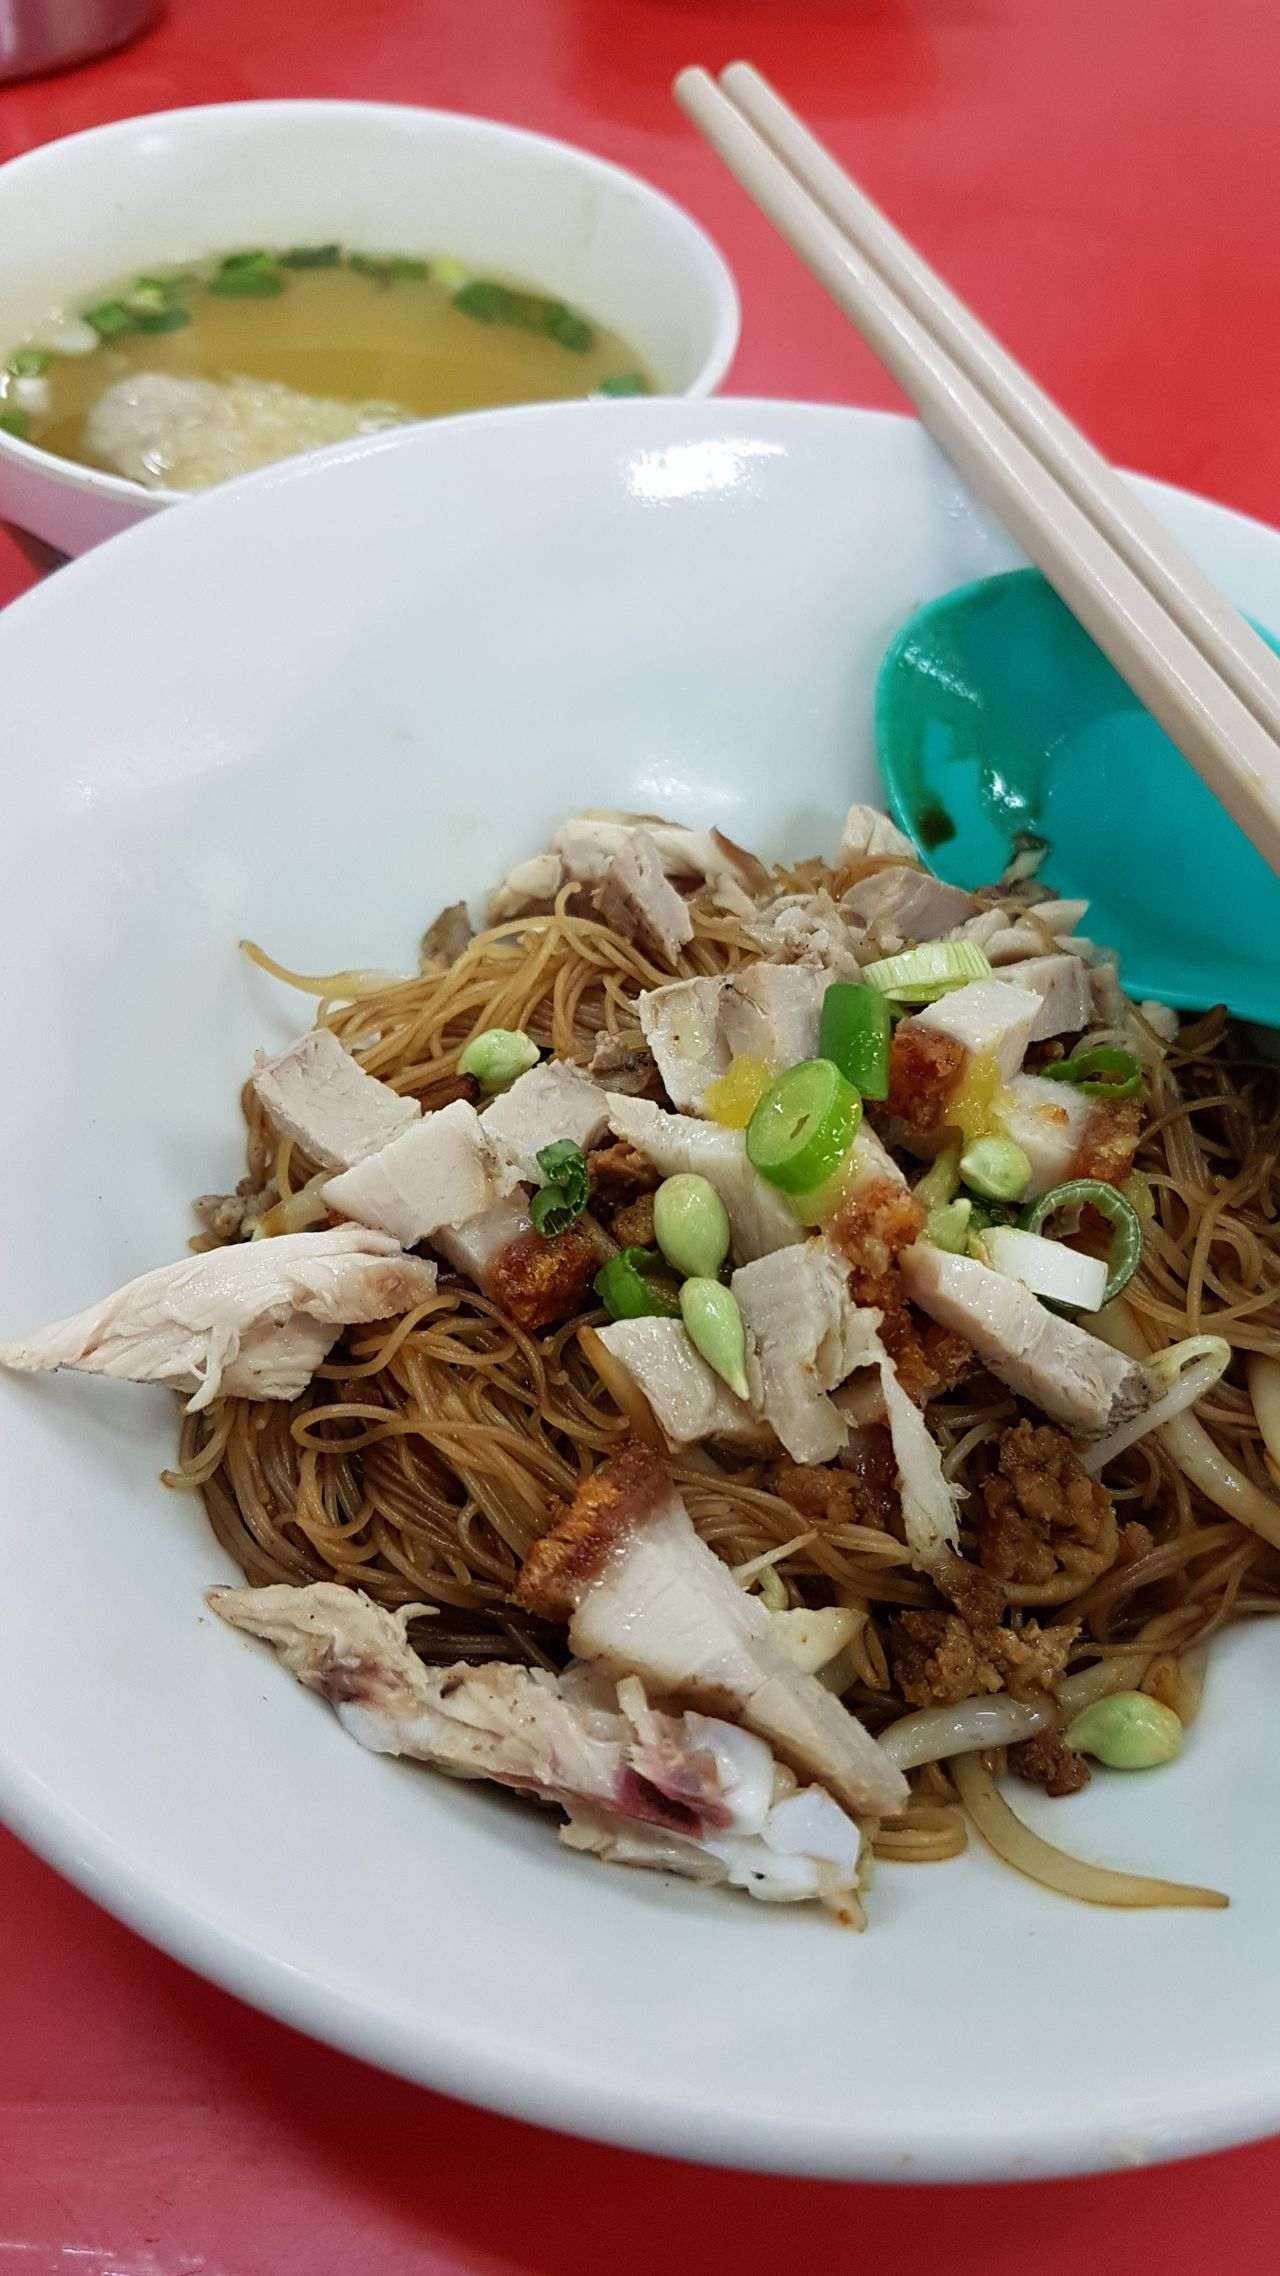 Food Ready-to-eat No People Noodles Dry Noodles Breakfast Breakfast ♥ Chinesefood Malaysia Truly Asia Asian Cuisine Chinese Food Chickens Asianfood Mee Meehoon Noodletime🍝 Noodletime